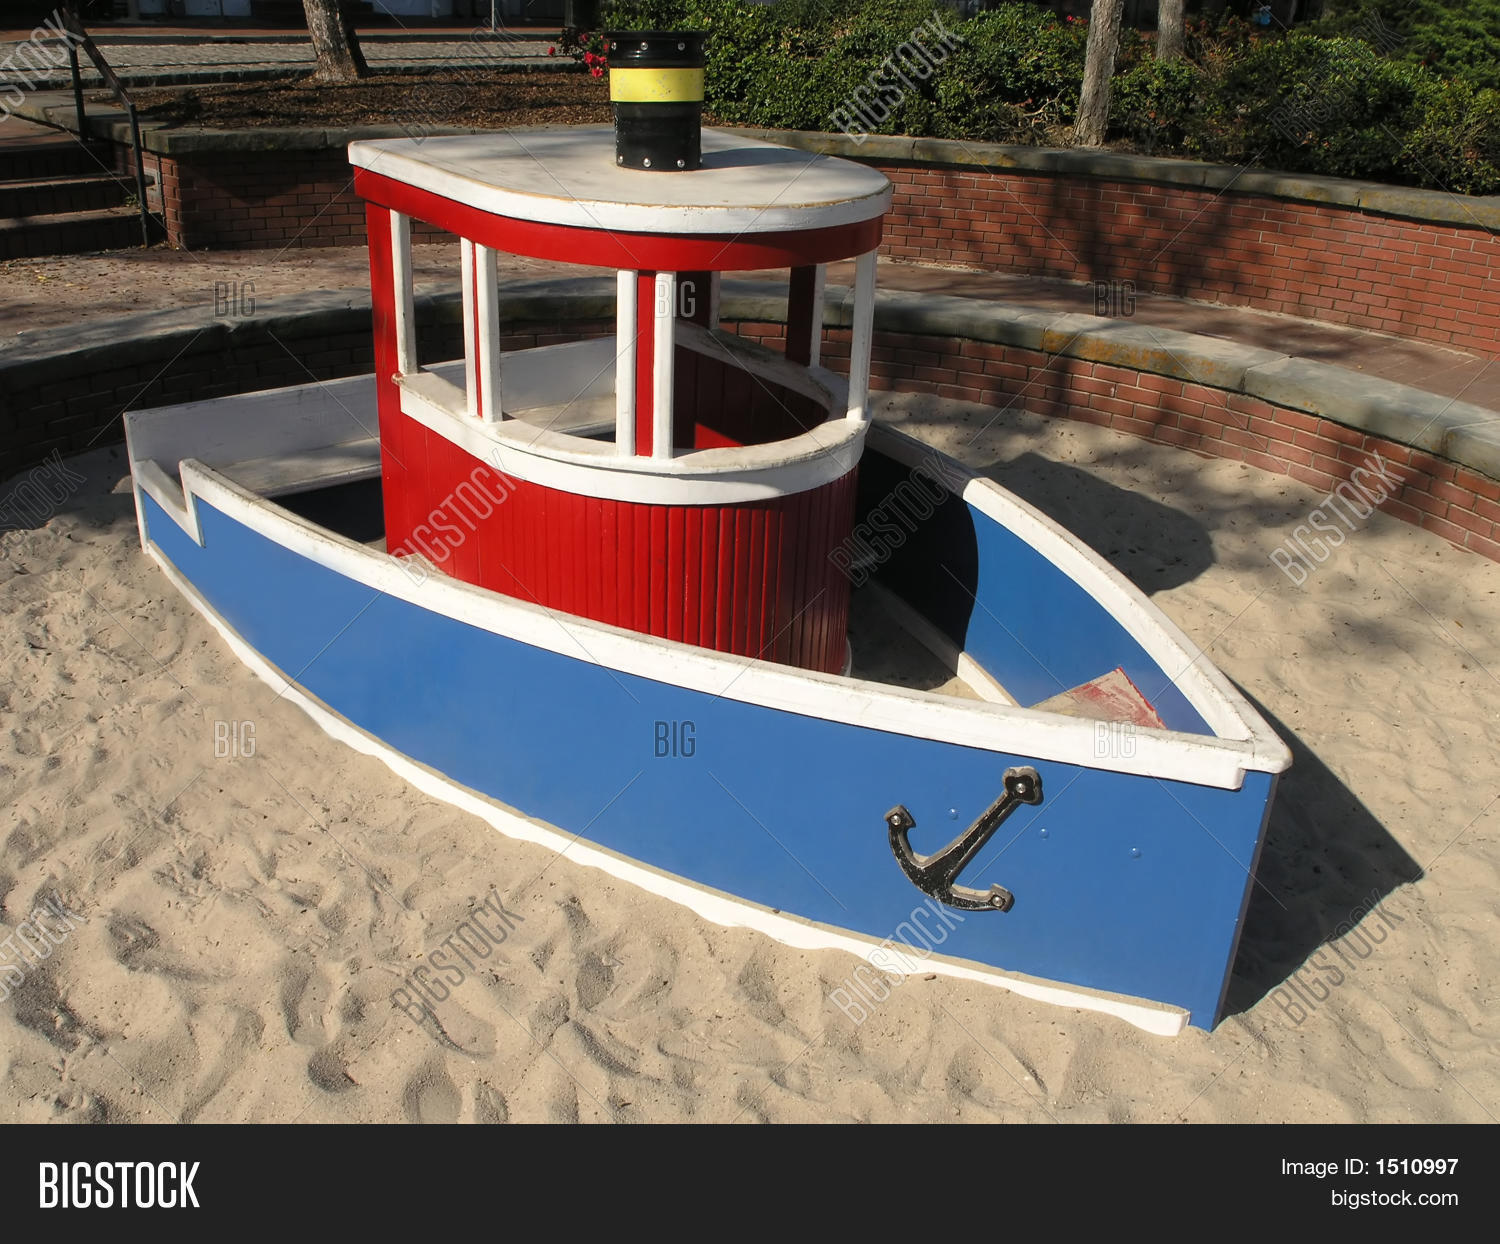 Tugboat Sandbox Image & Photo | Bigstock